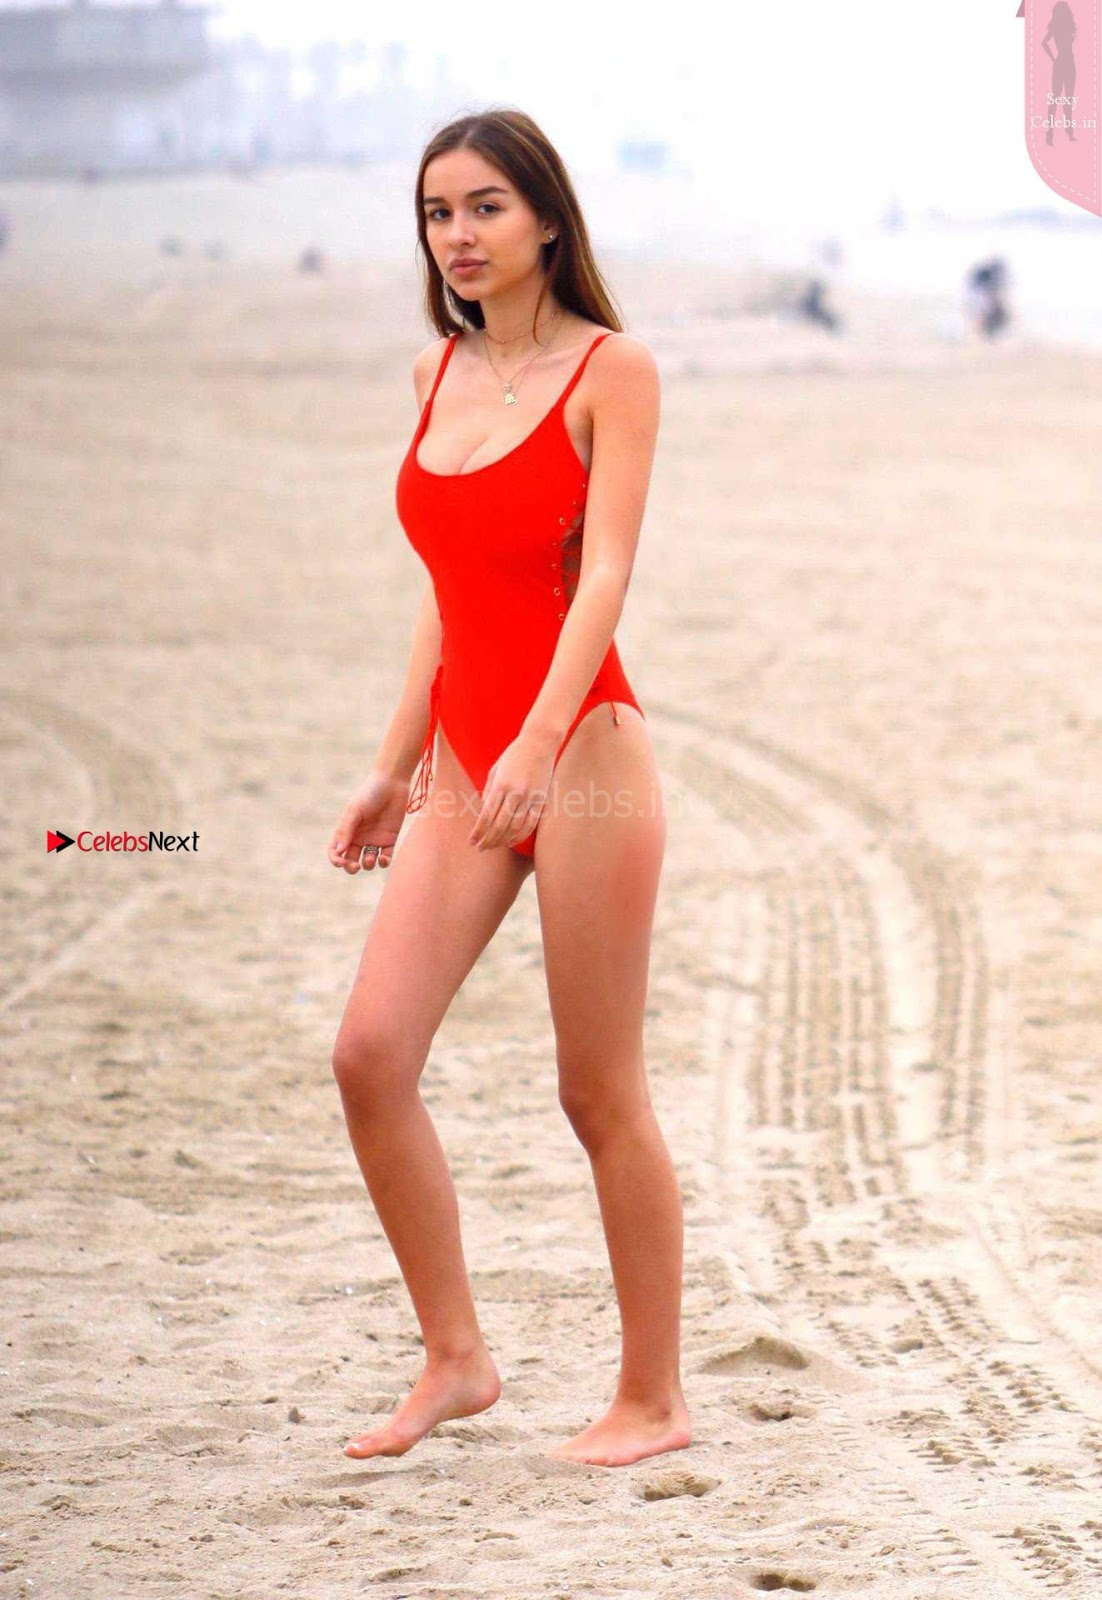 Beautiful Sexy Teenage Beauty Bikini Model Sophie Mudd  ~ SexyCelebs.in Exclusive